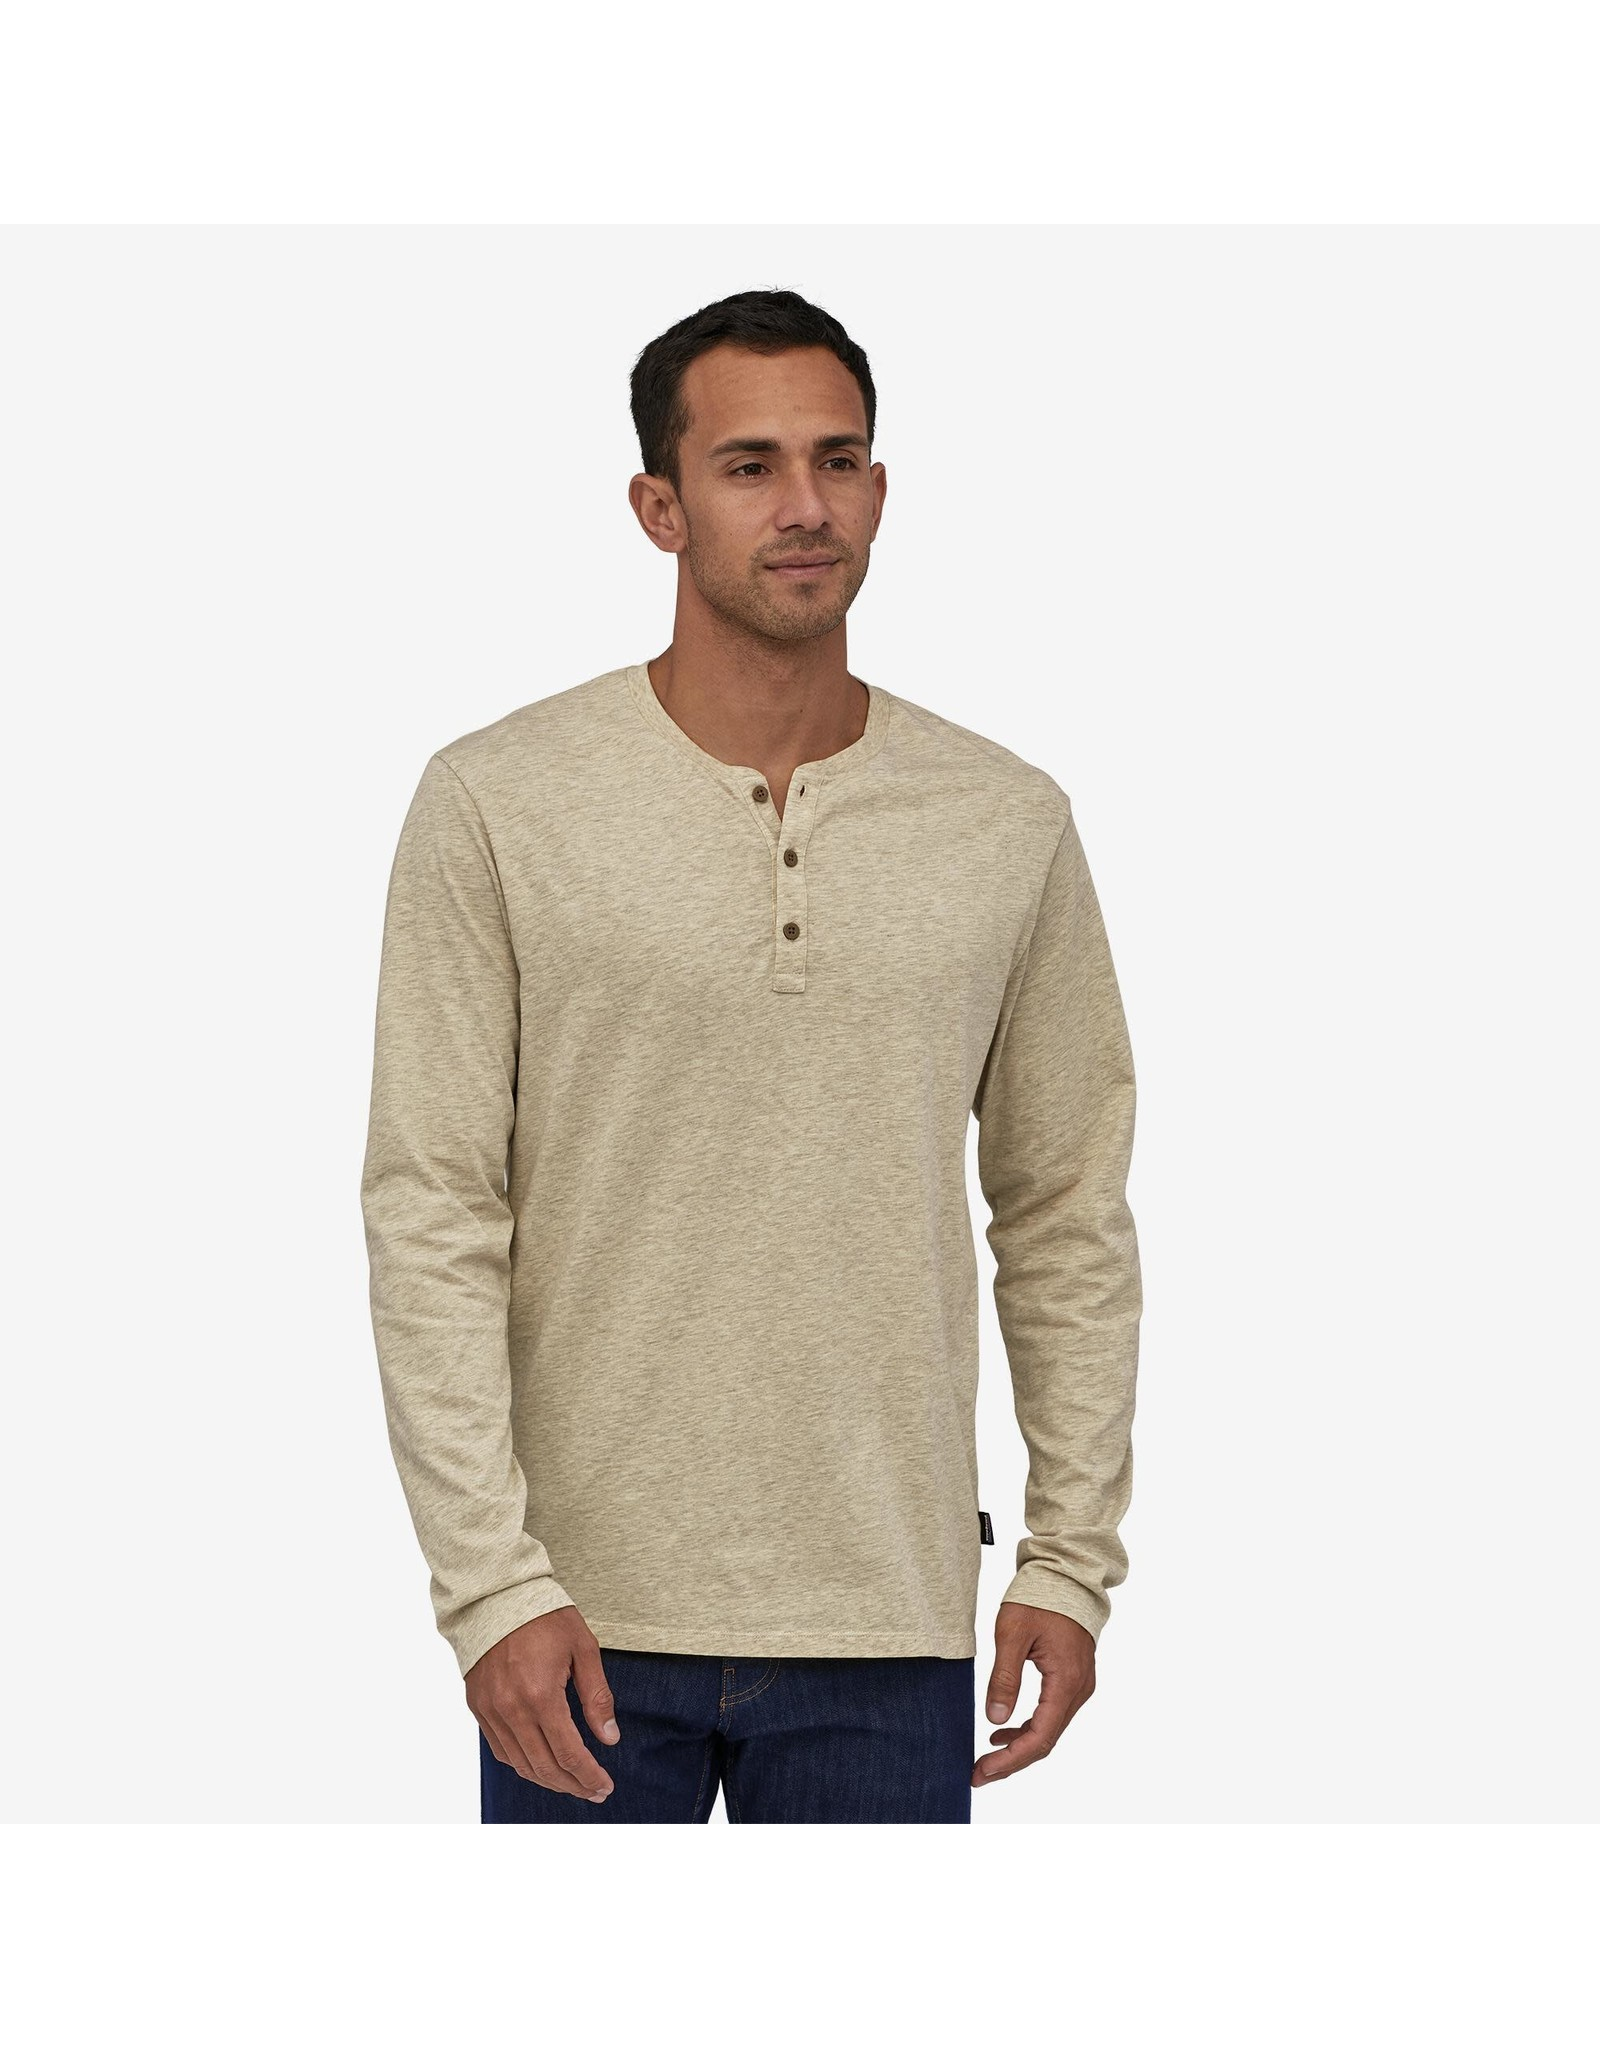 Patagonia Men's LS Organic Cotton LW Henley Pullover